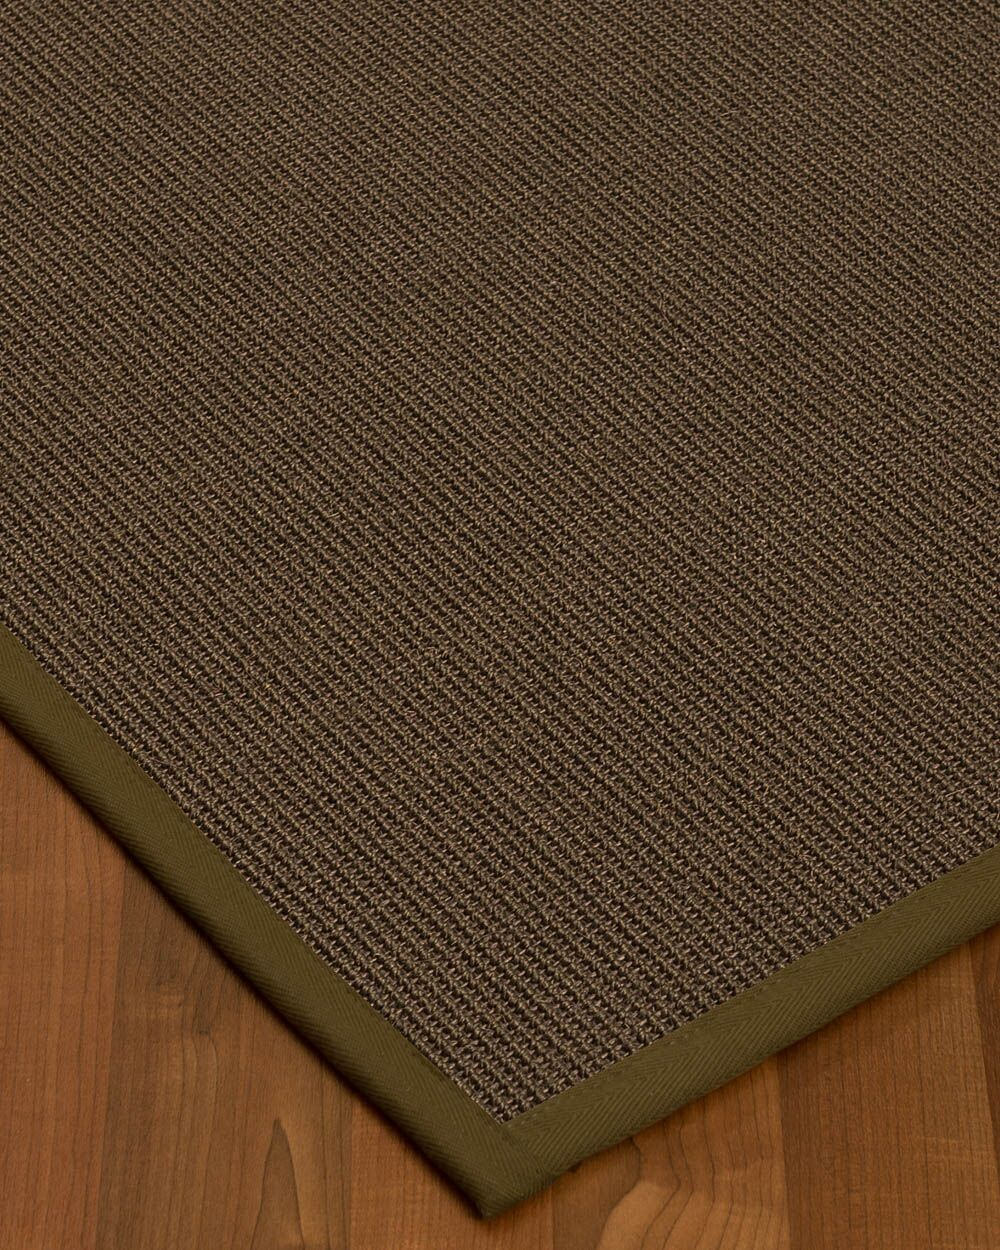 Brokaw Modern Hand Woven Solid Brown Area Rug Rug Size: Rectangle 4' X 6'